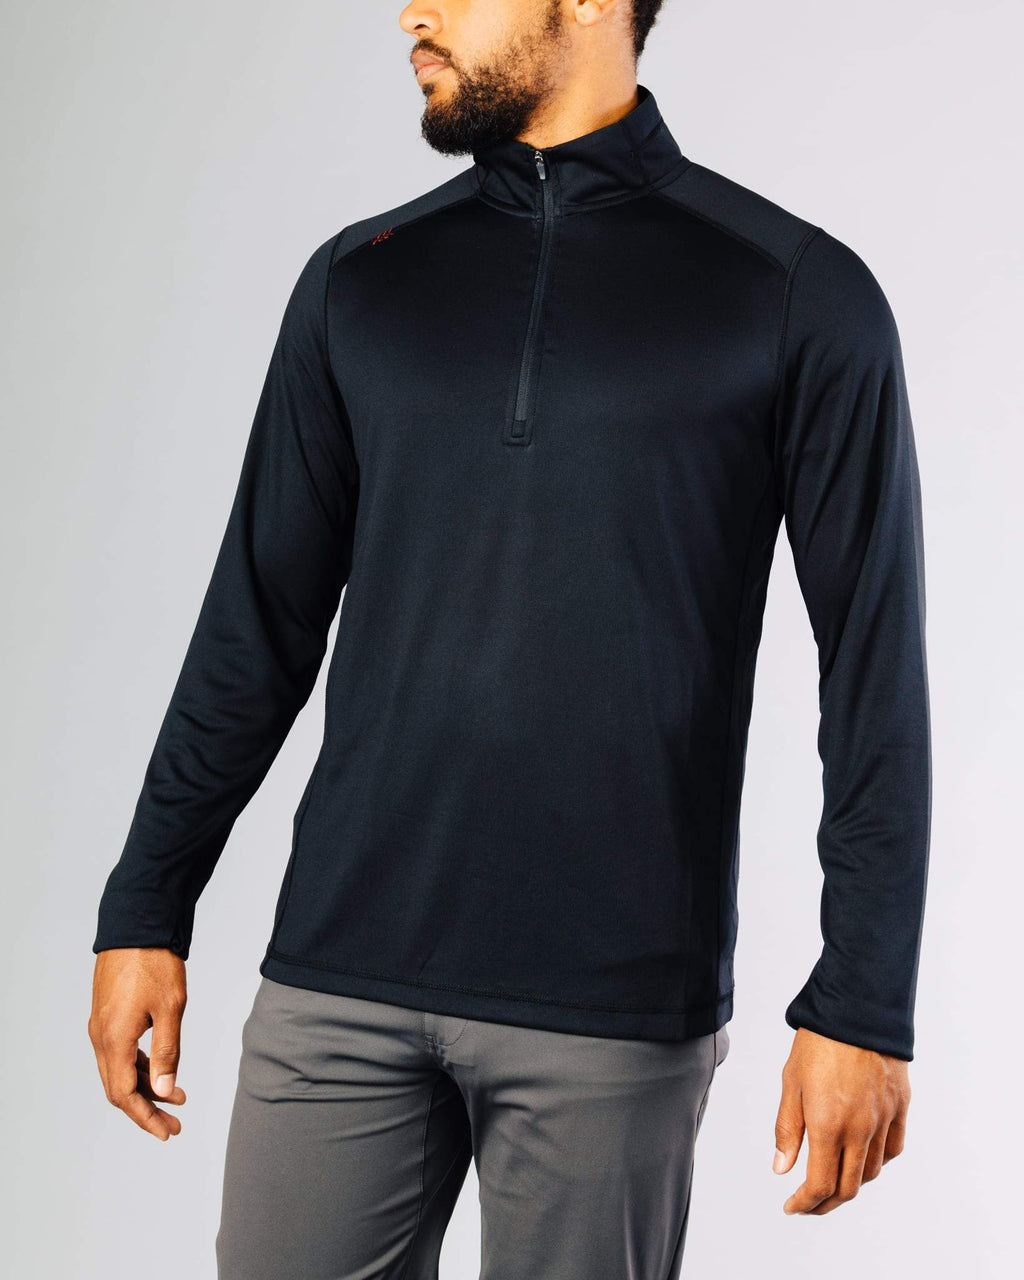 Sequoia 2.0 Quarter-Zip Pullover, Black